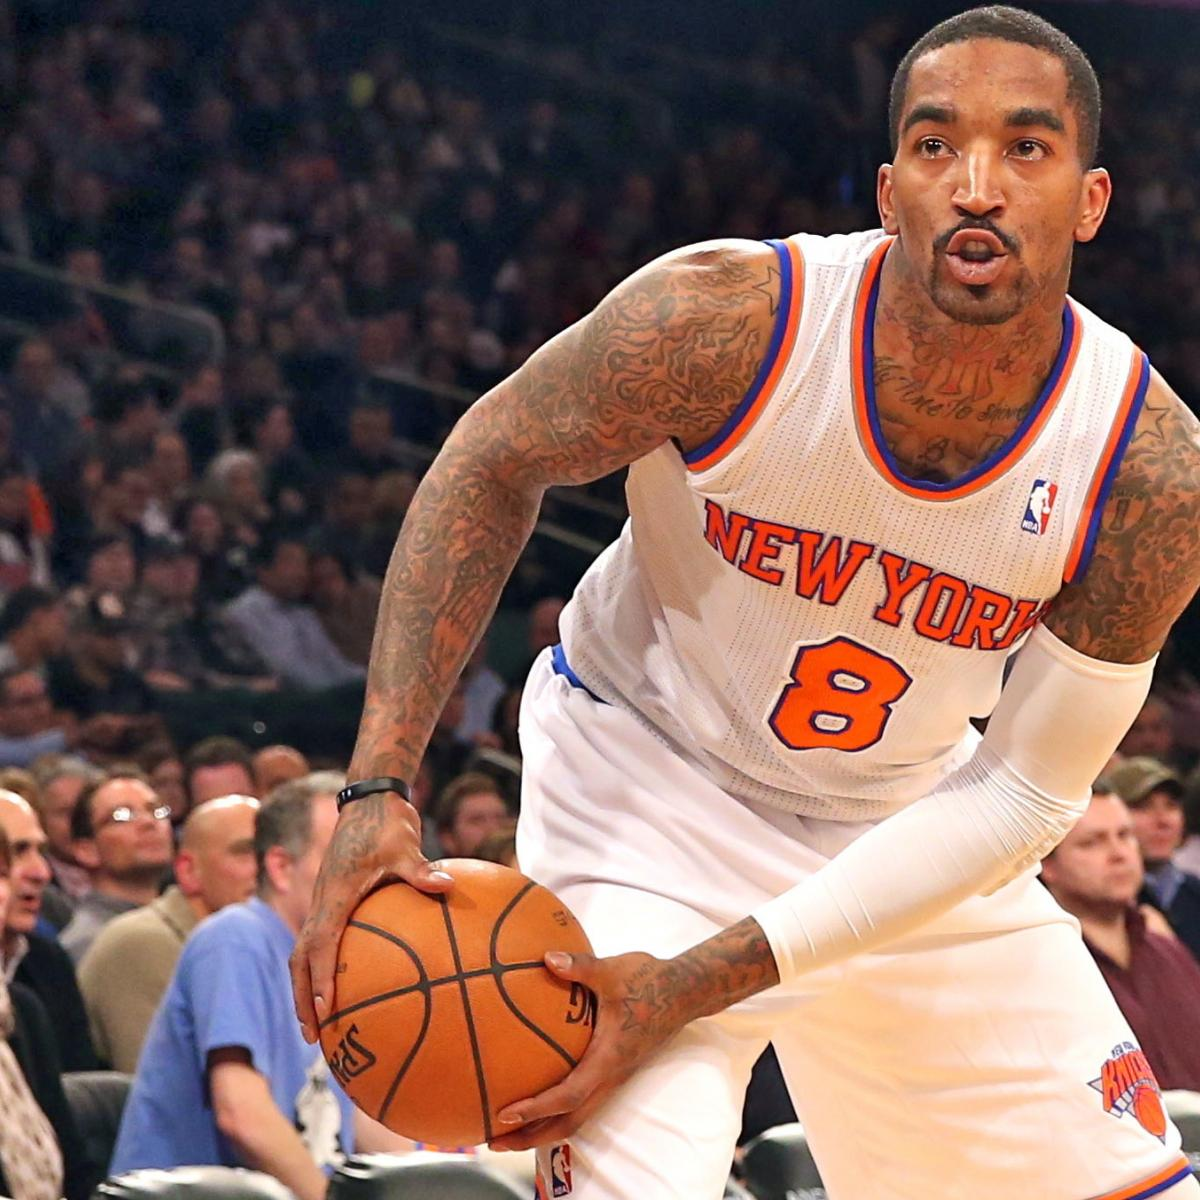 J.R. Smith's Dad Defends His Son's Social Life In Midst Of